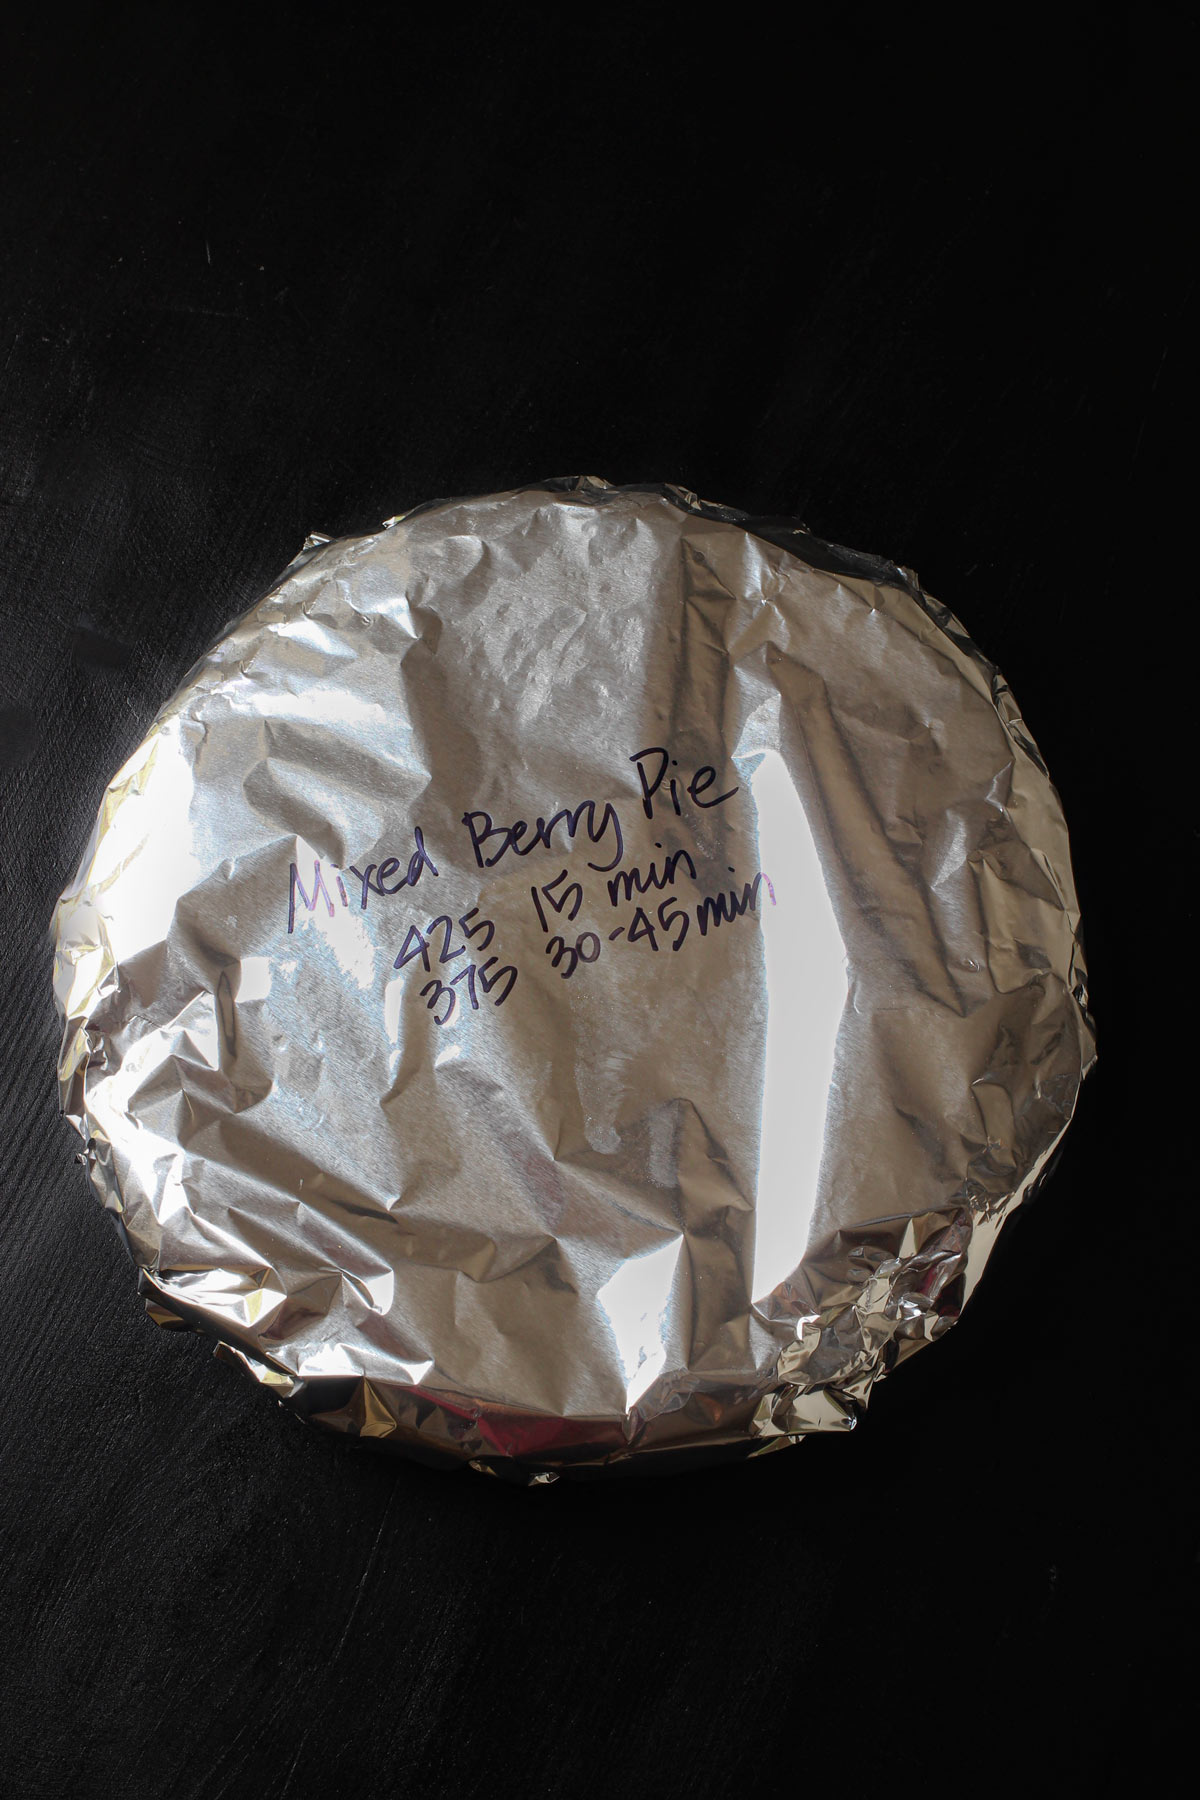 mixed berry pie wrapped with foil and labeled with baking ingredients.